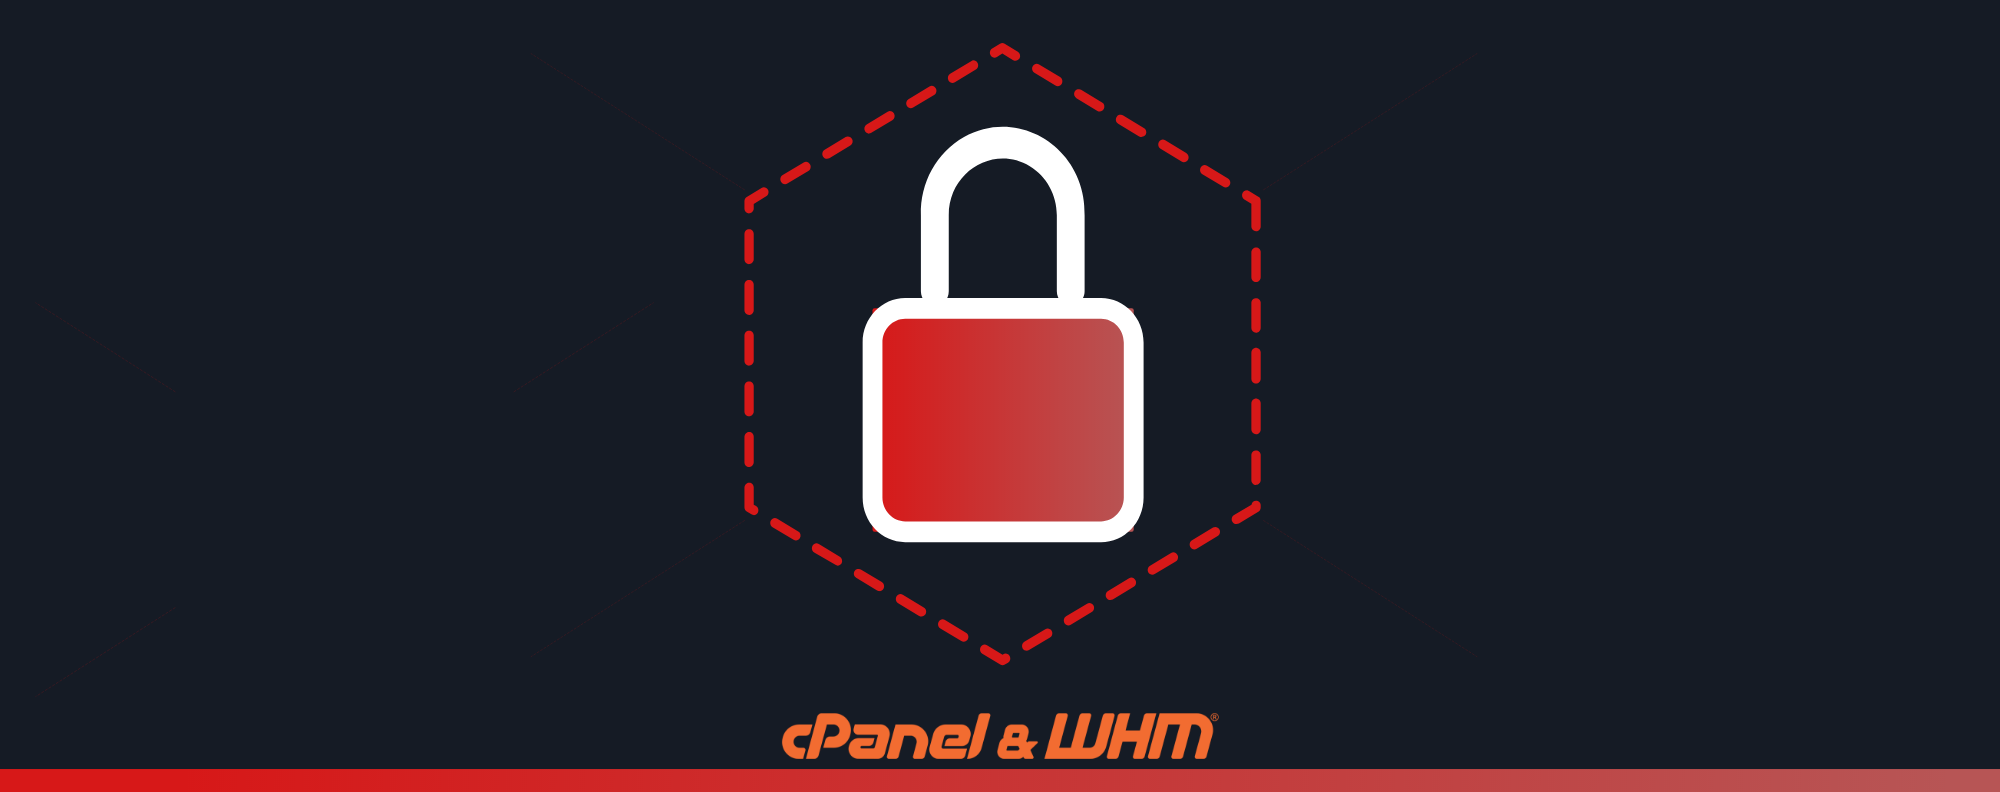 cPanel announced a serious Exim issue